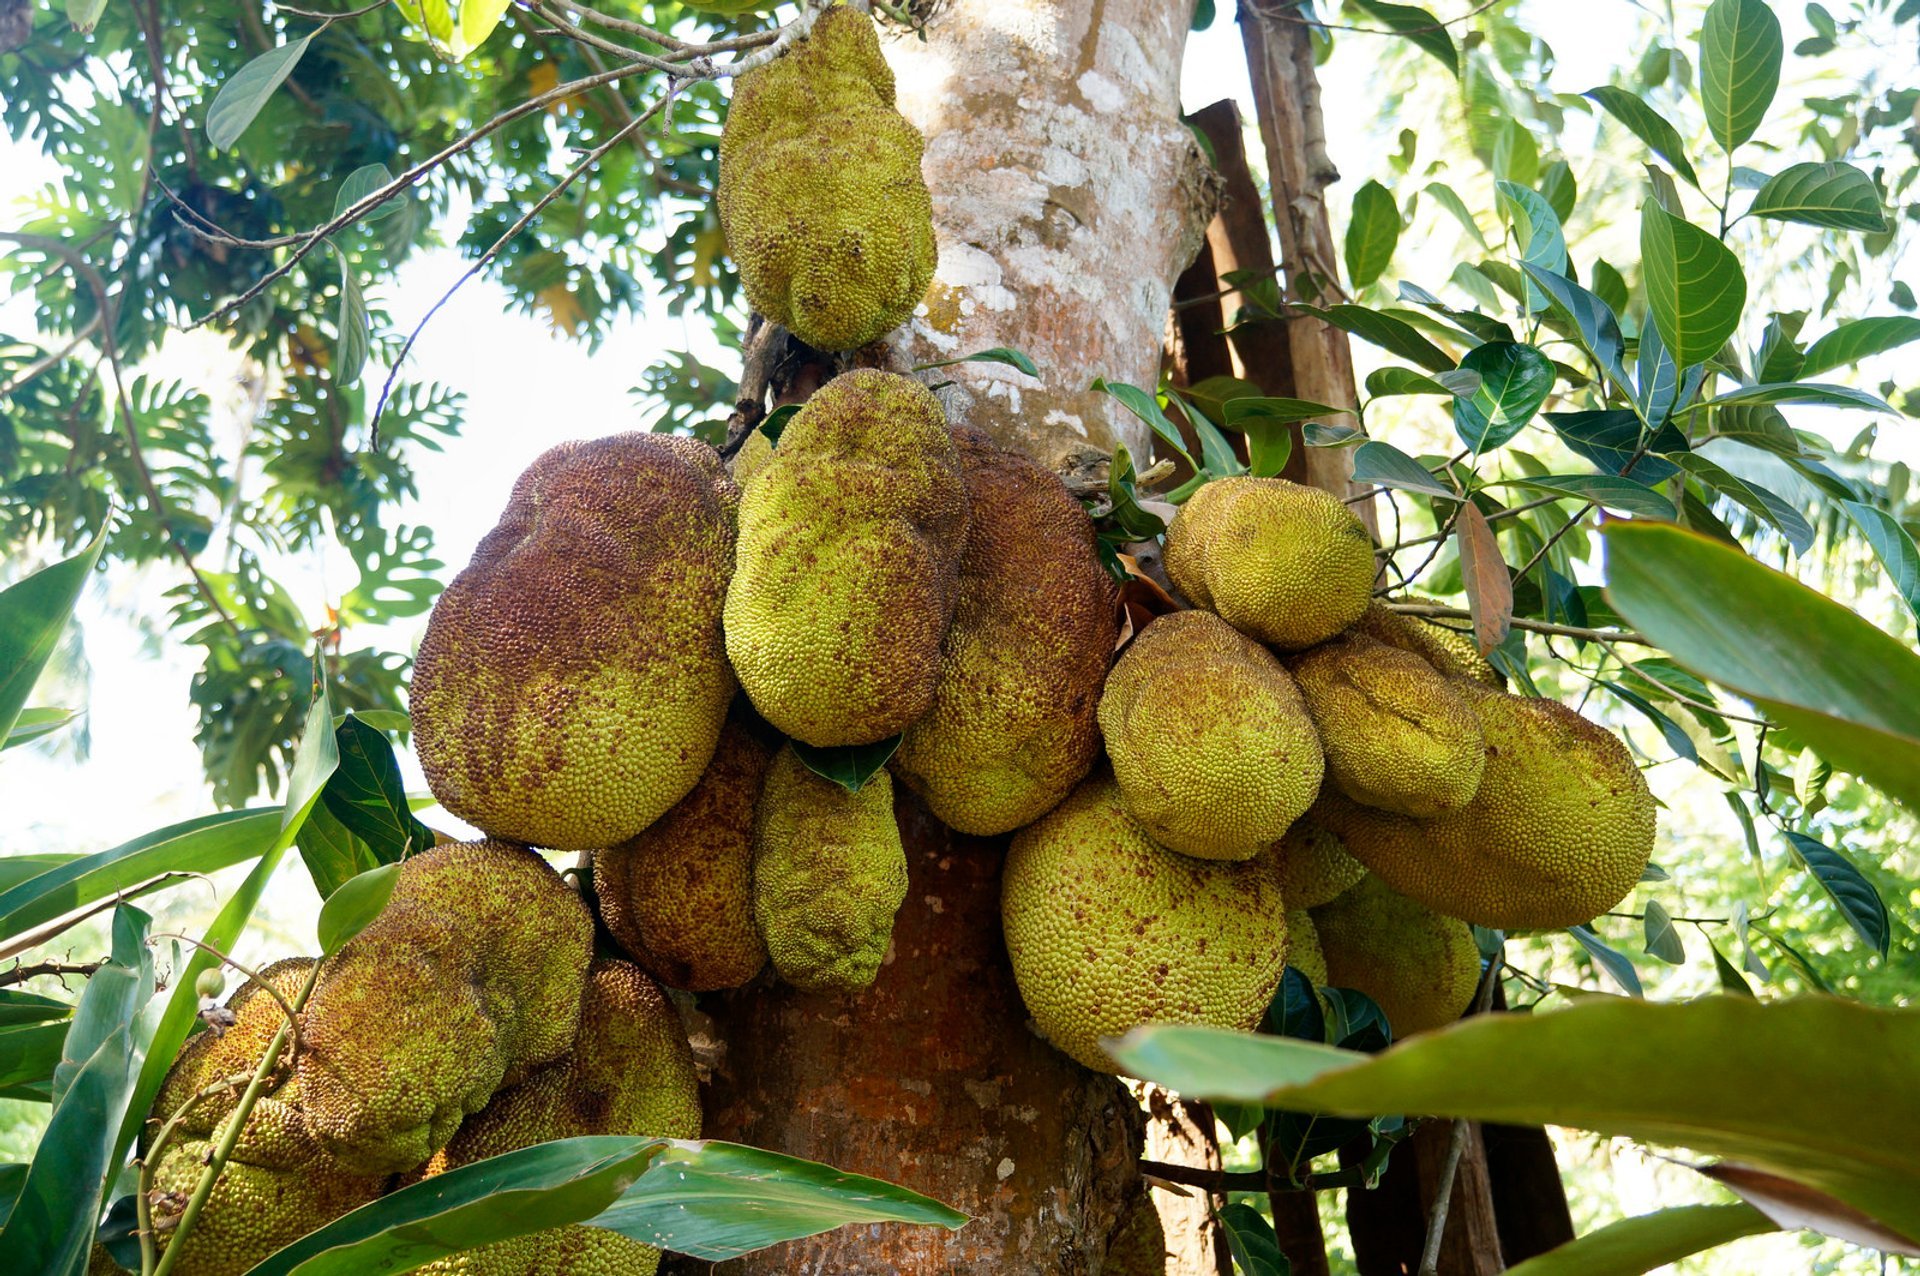 Breadfruit and Jackfruit in Zanzibar - Best Time